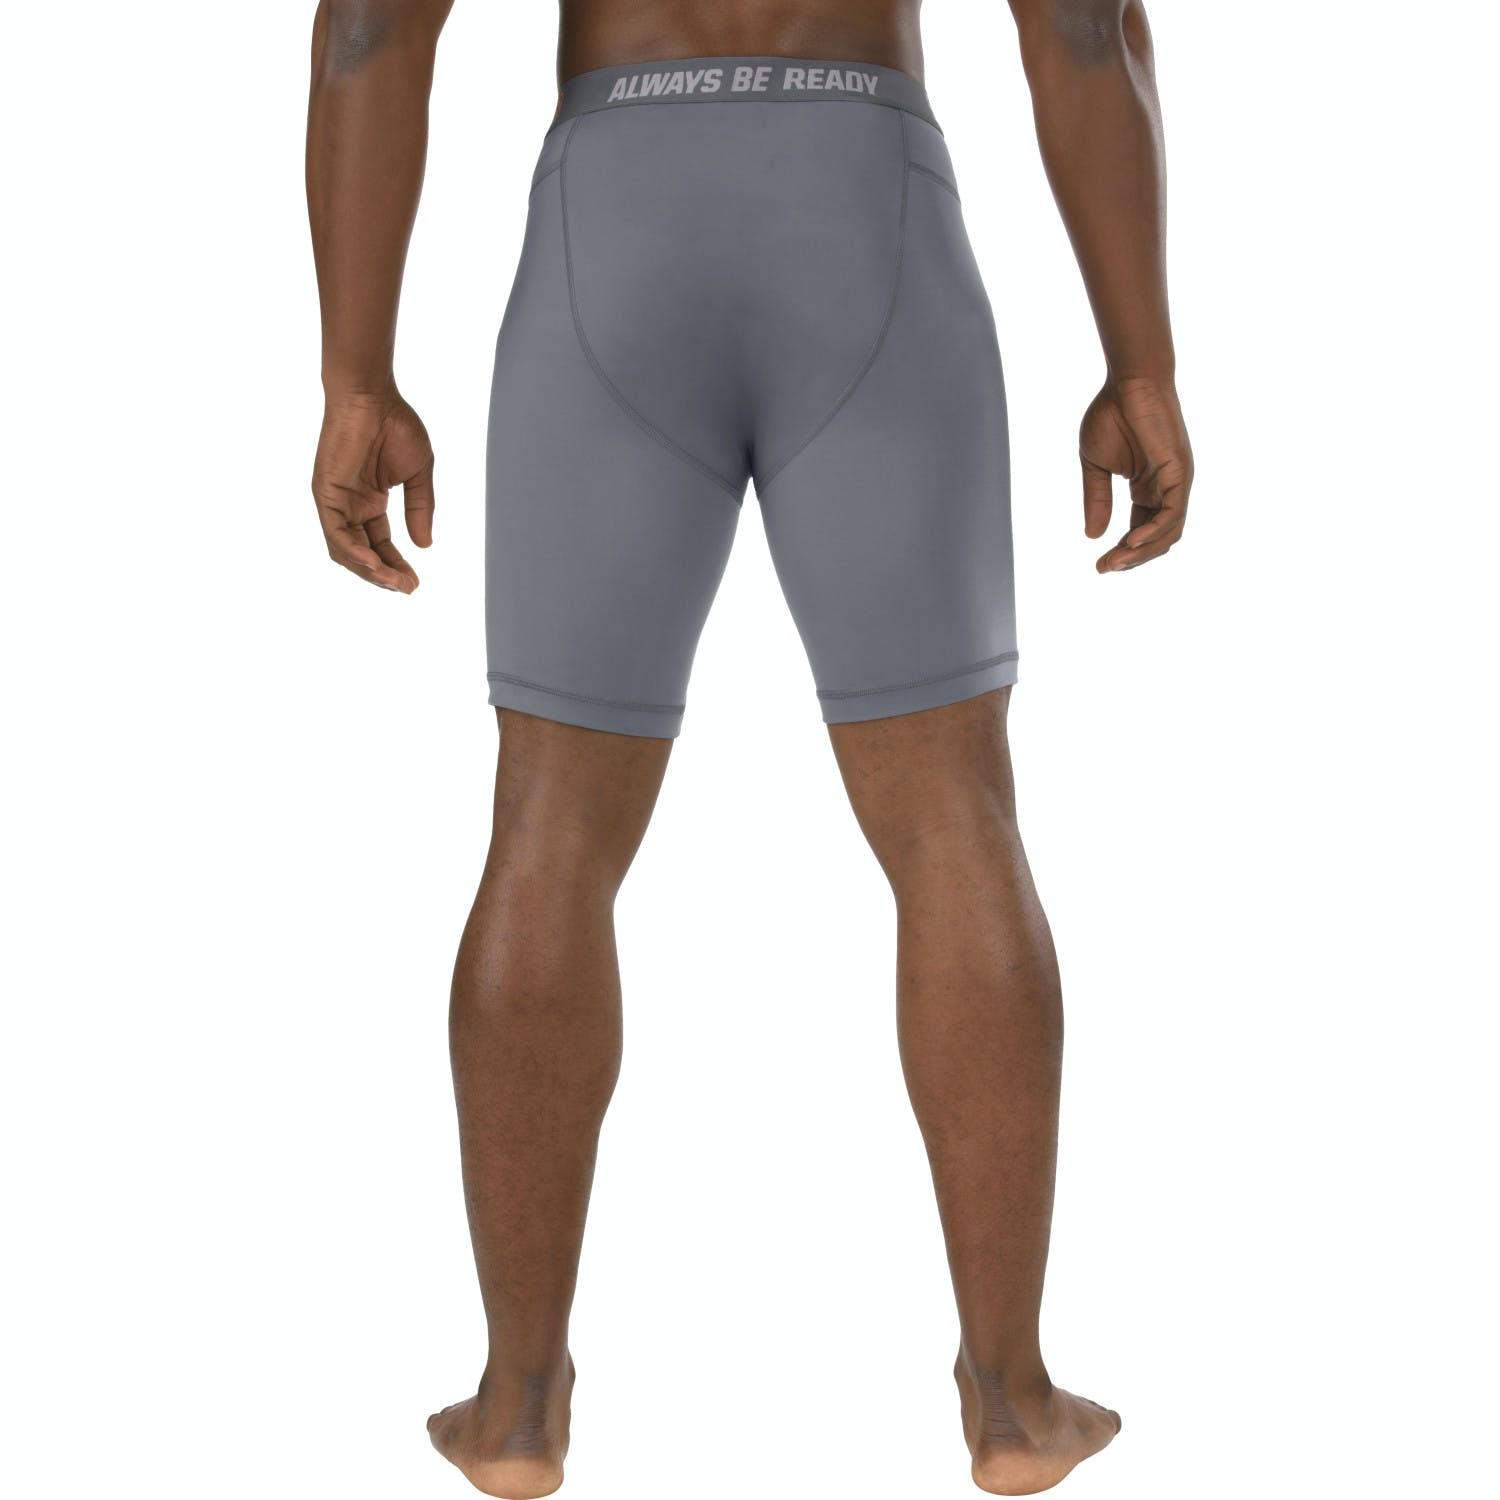 Black All Sizes 5.11 Tactical Performance 9 Inch Mens Underwear Boxer Shorts